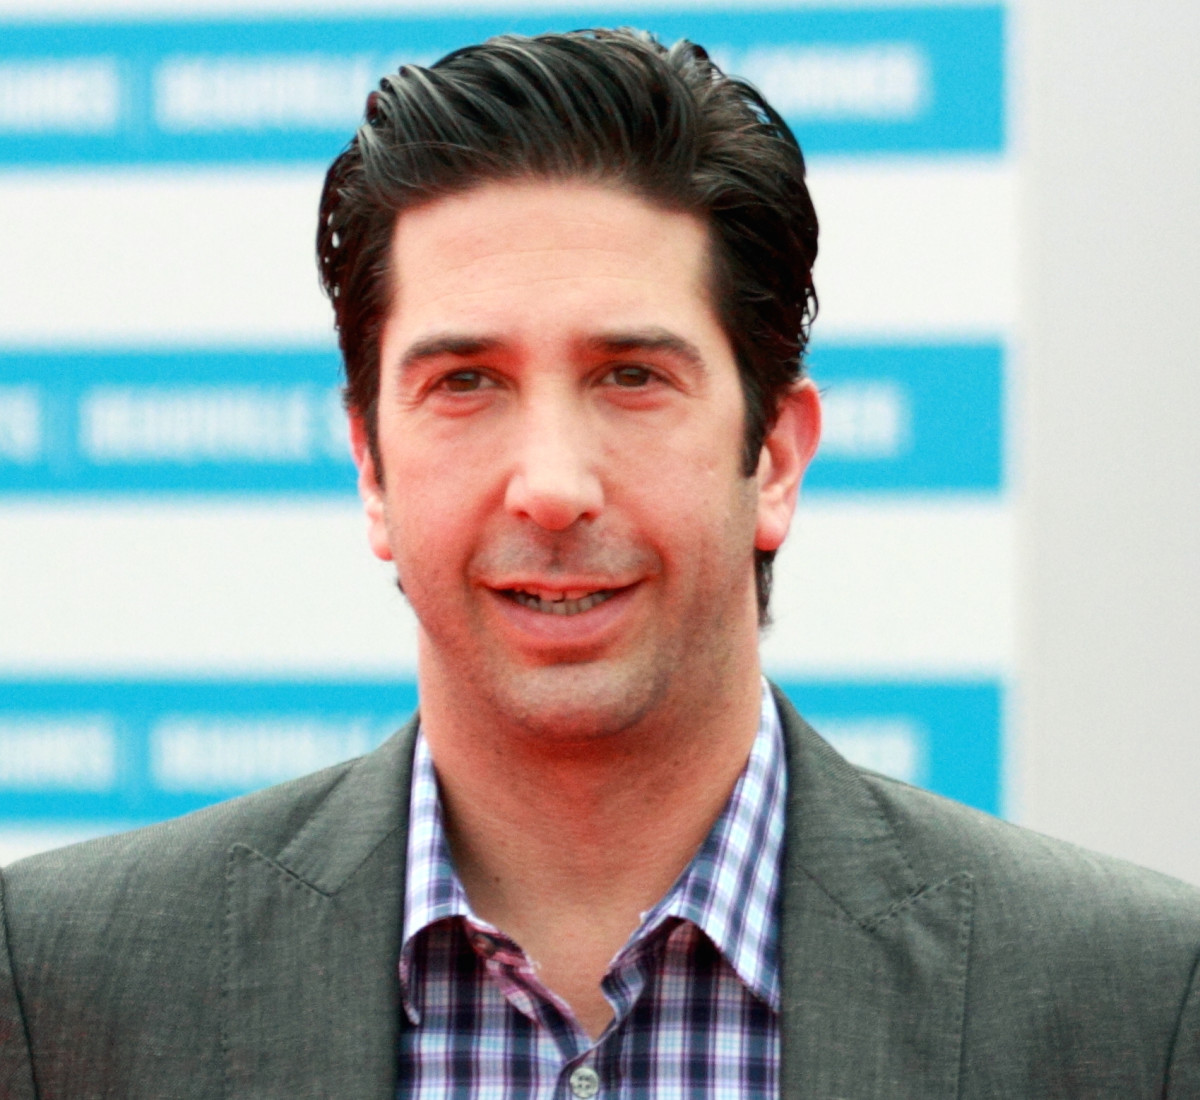 David Schwimmer Photo by Phillippe Berdalle Wikimedia Commons